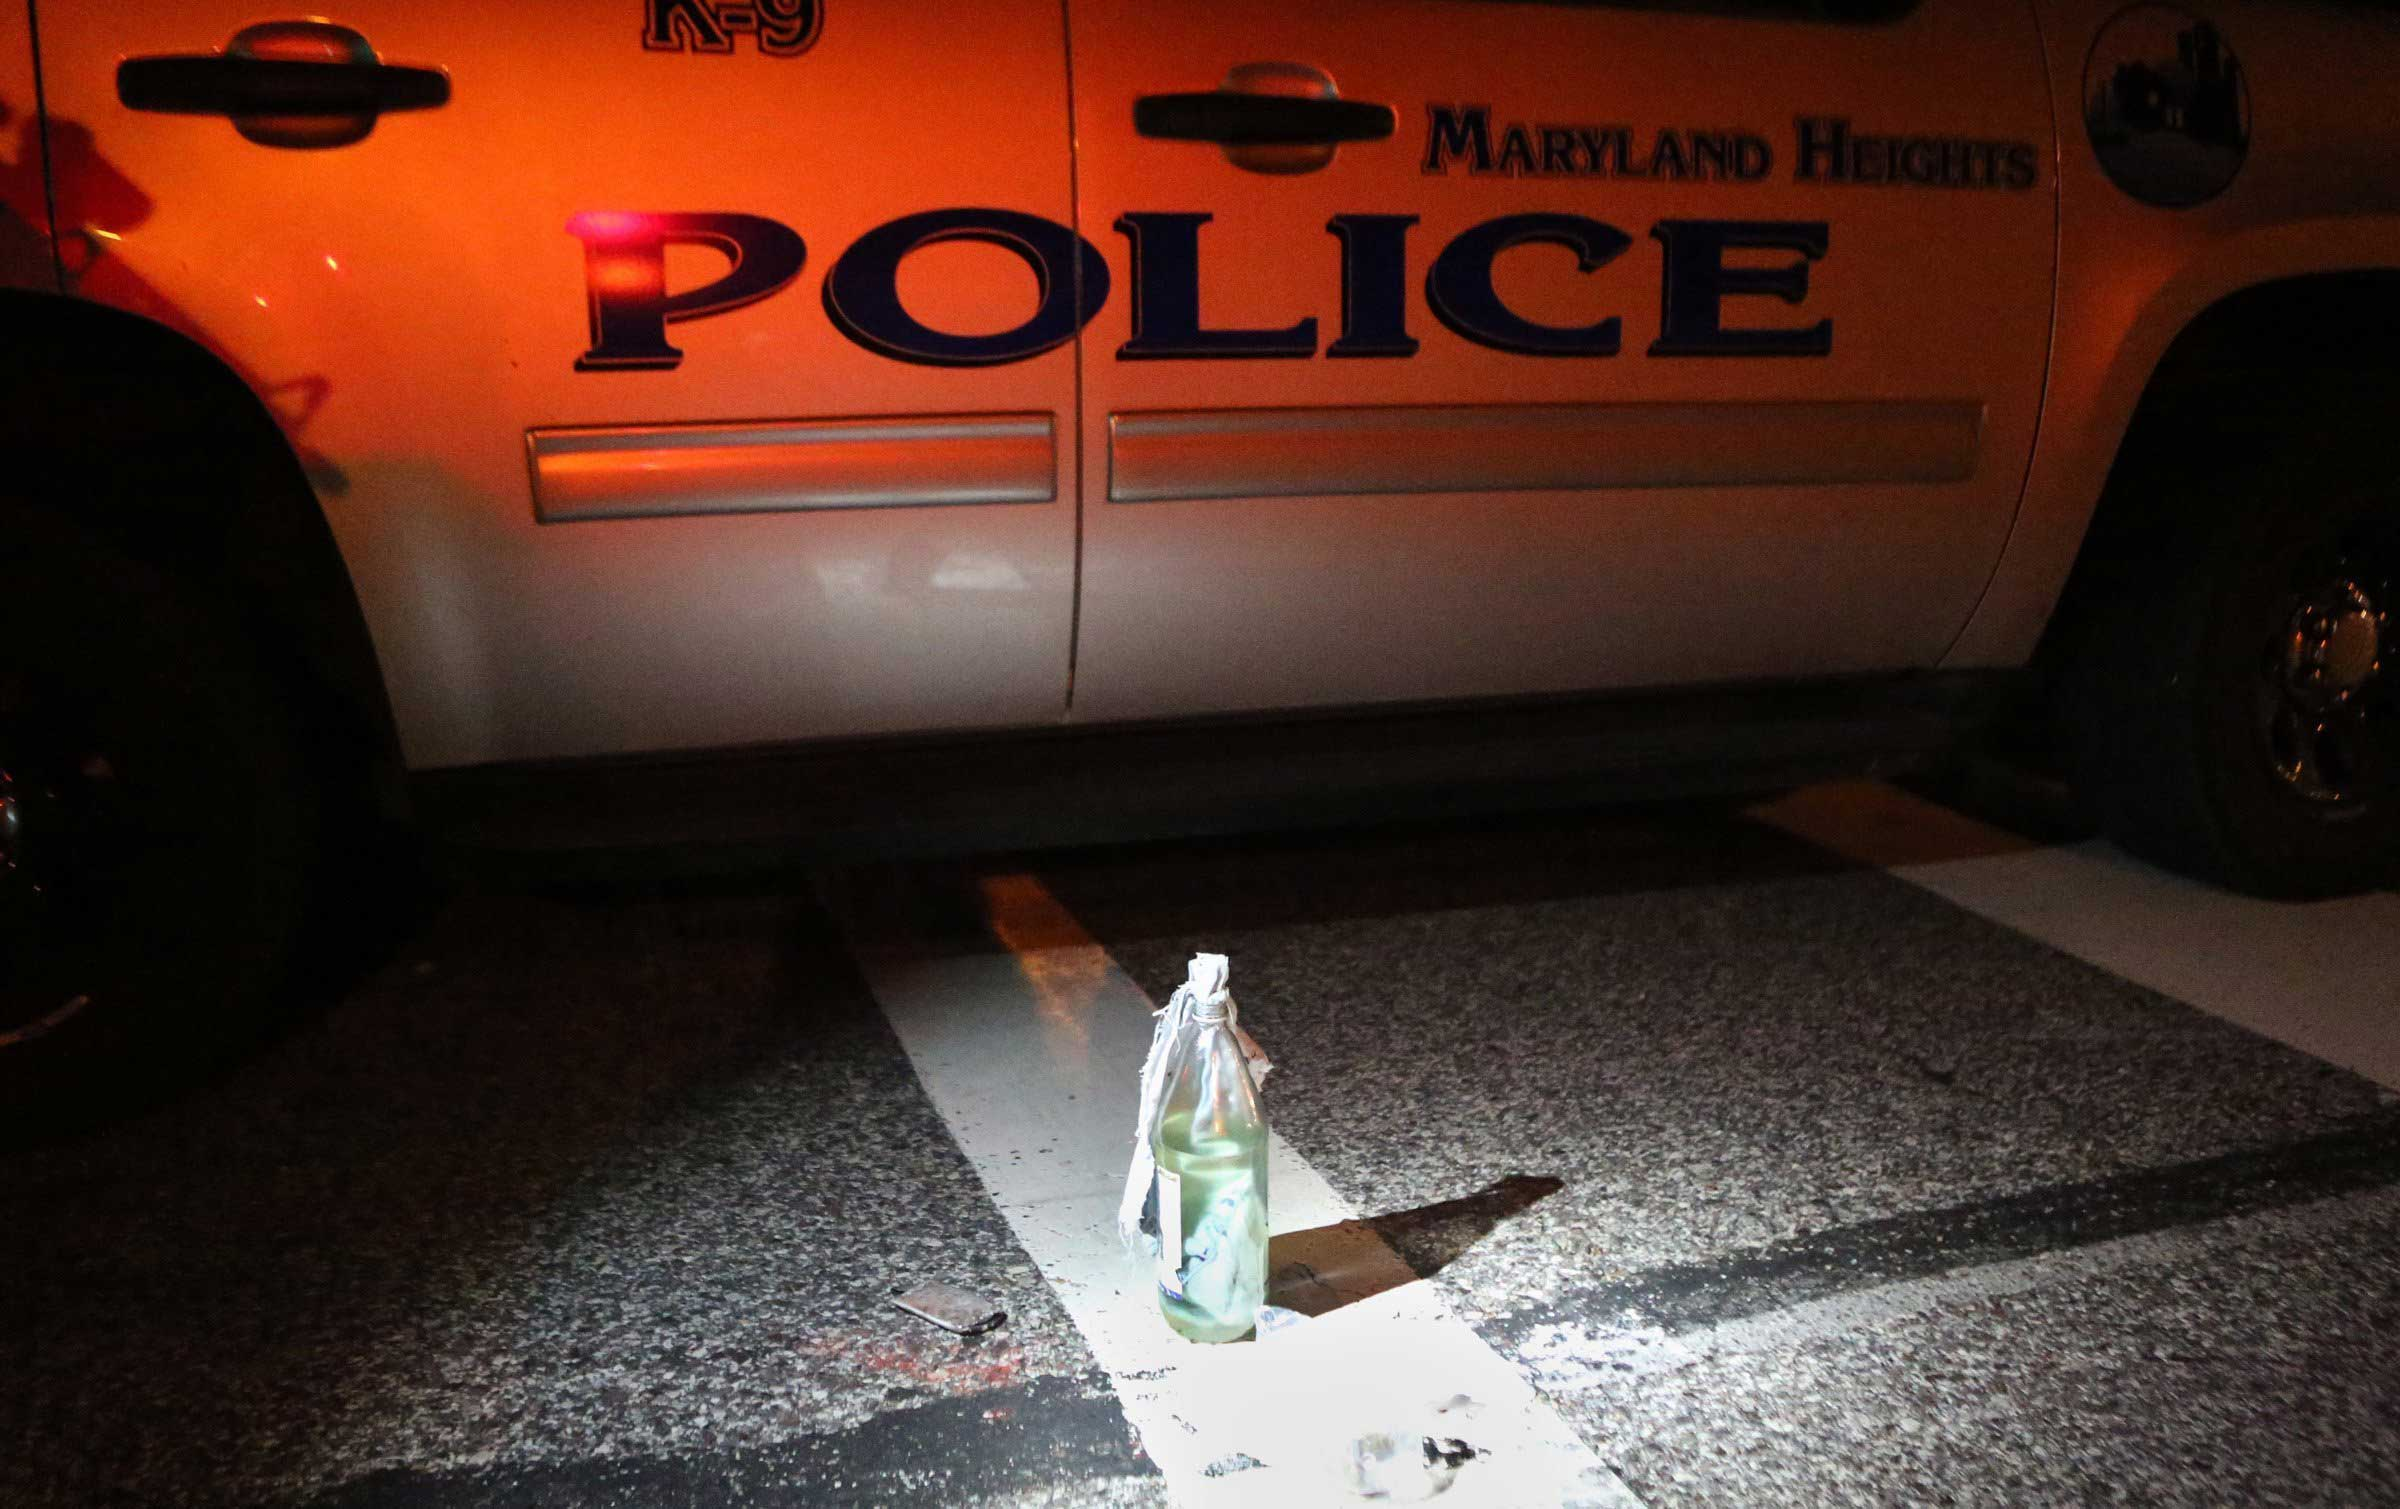 Aug. 19, 2014. A Molotov cocktail sits near a police car after it was removed from a truck carrying 12 people when it was stopped along W. Florissant Avenue near Canfield Drive. The police found two loaded guns on the people in the truck and removed an unused Molotov cocktail from the truck.